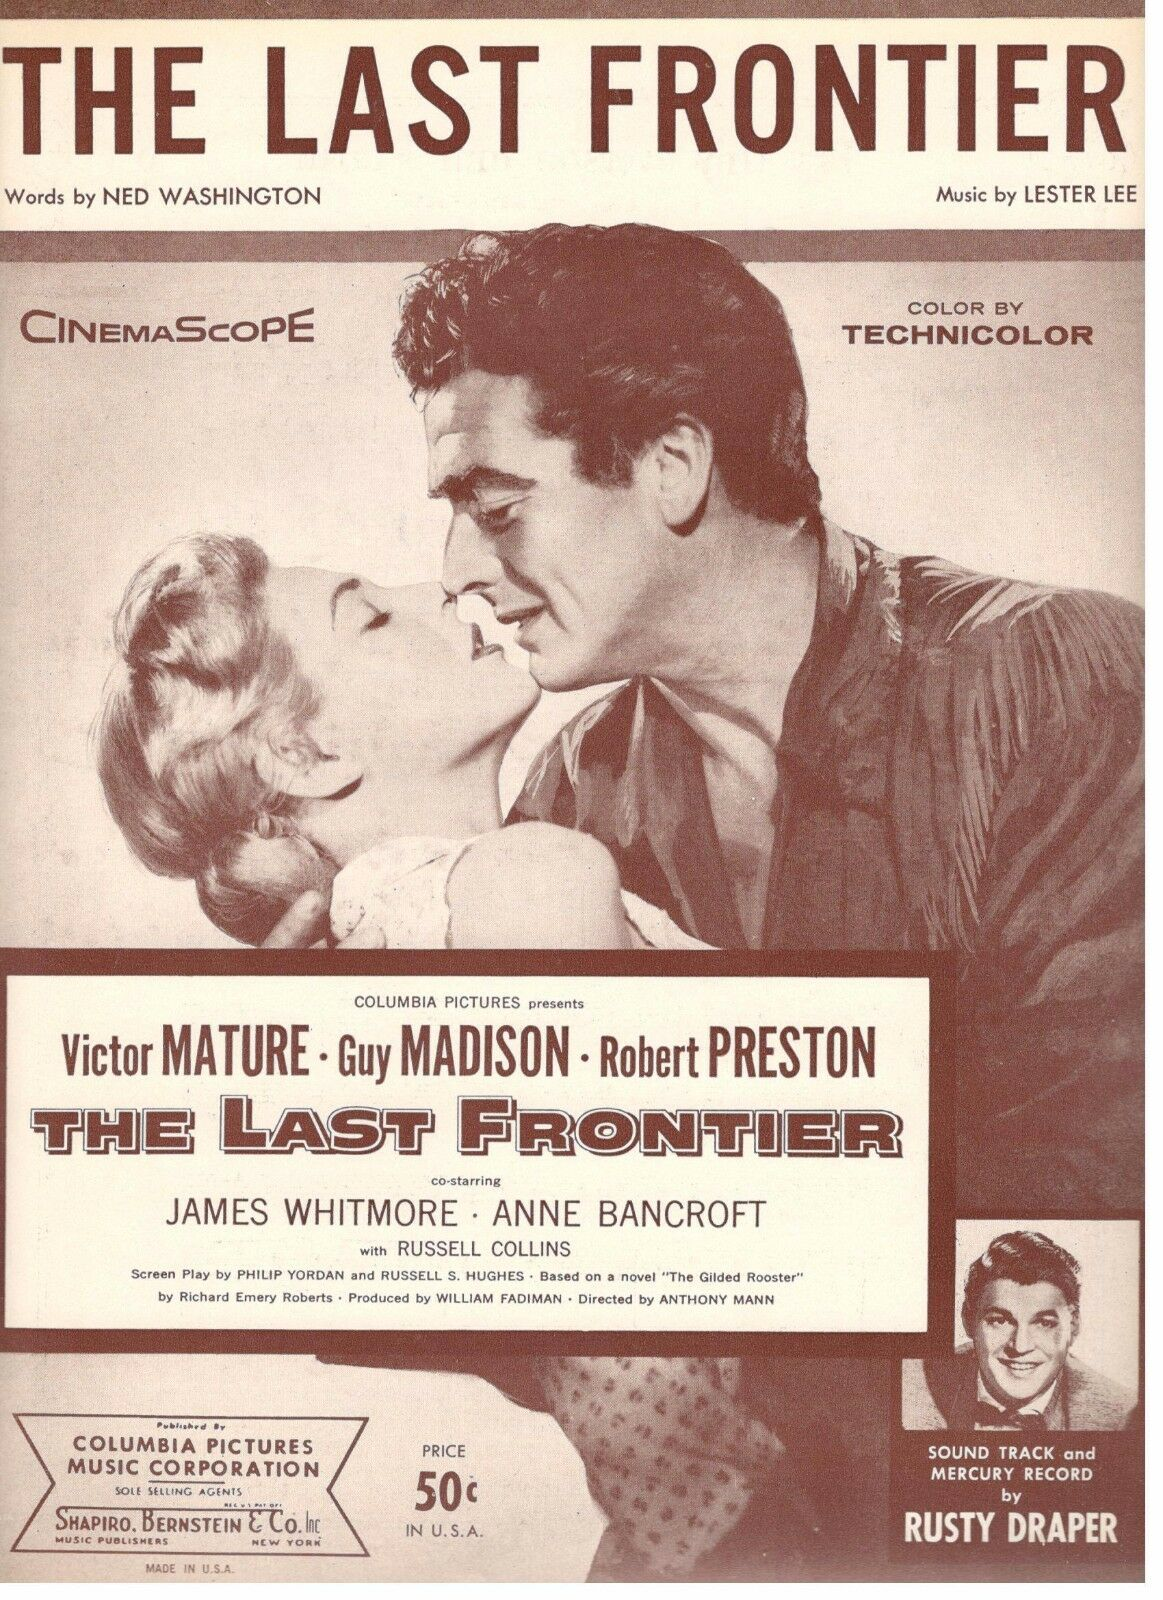 THE LAST FRONTIER  VICTOR MATURE MADISON DRAPER SHEET MUSIC-1955-RARE-NEW-MINT